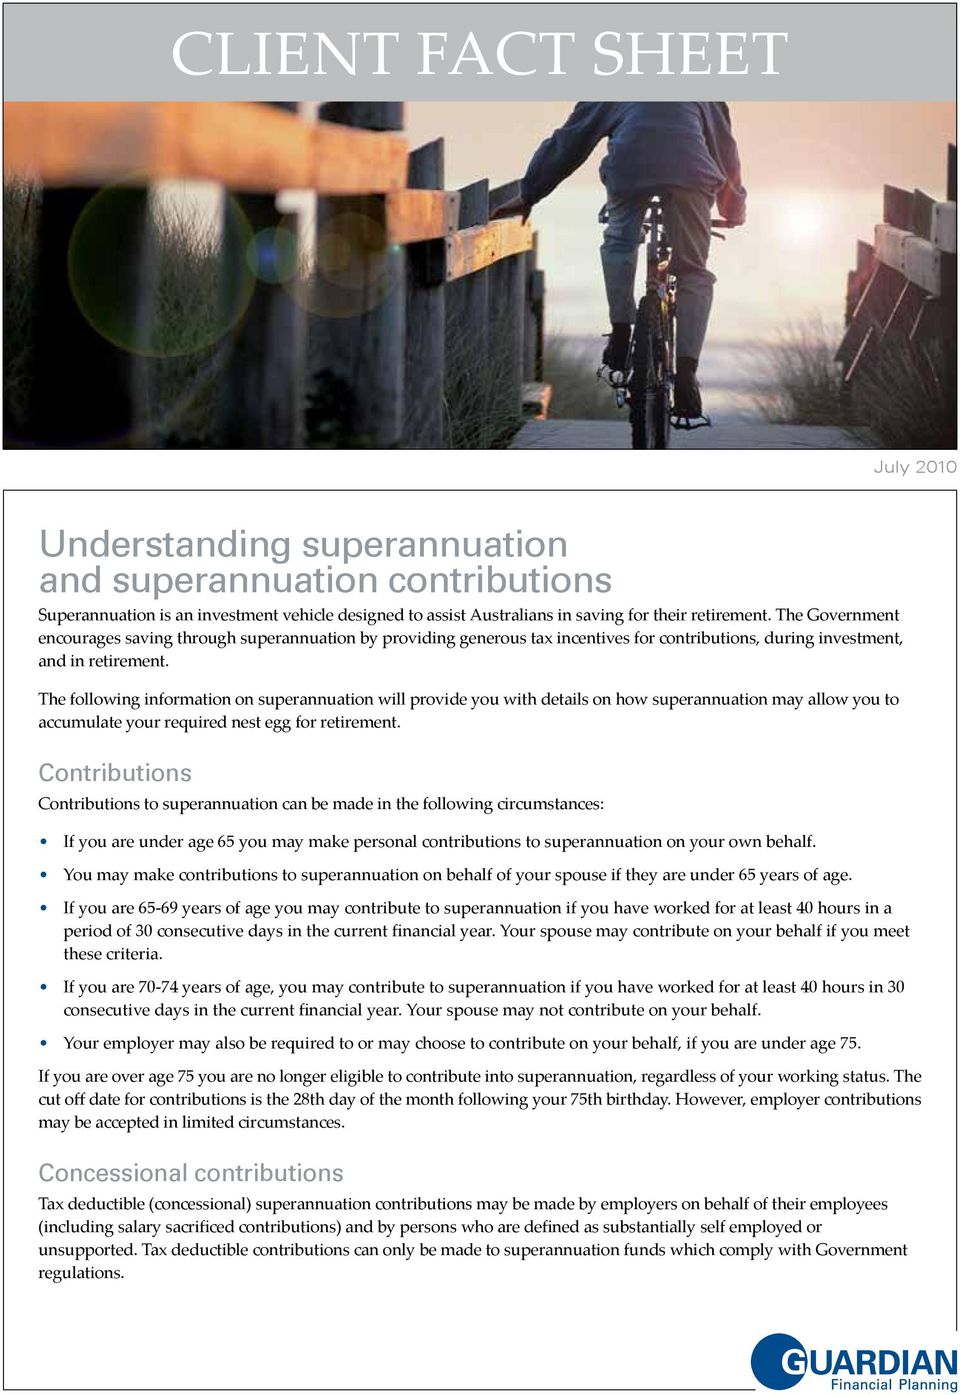 The following information on superannuation will provide you with details on how superannuation may allow you to accumulate your required nest egg for retirement.